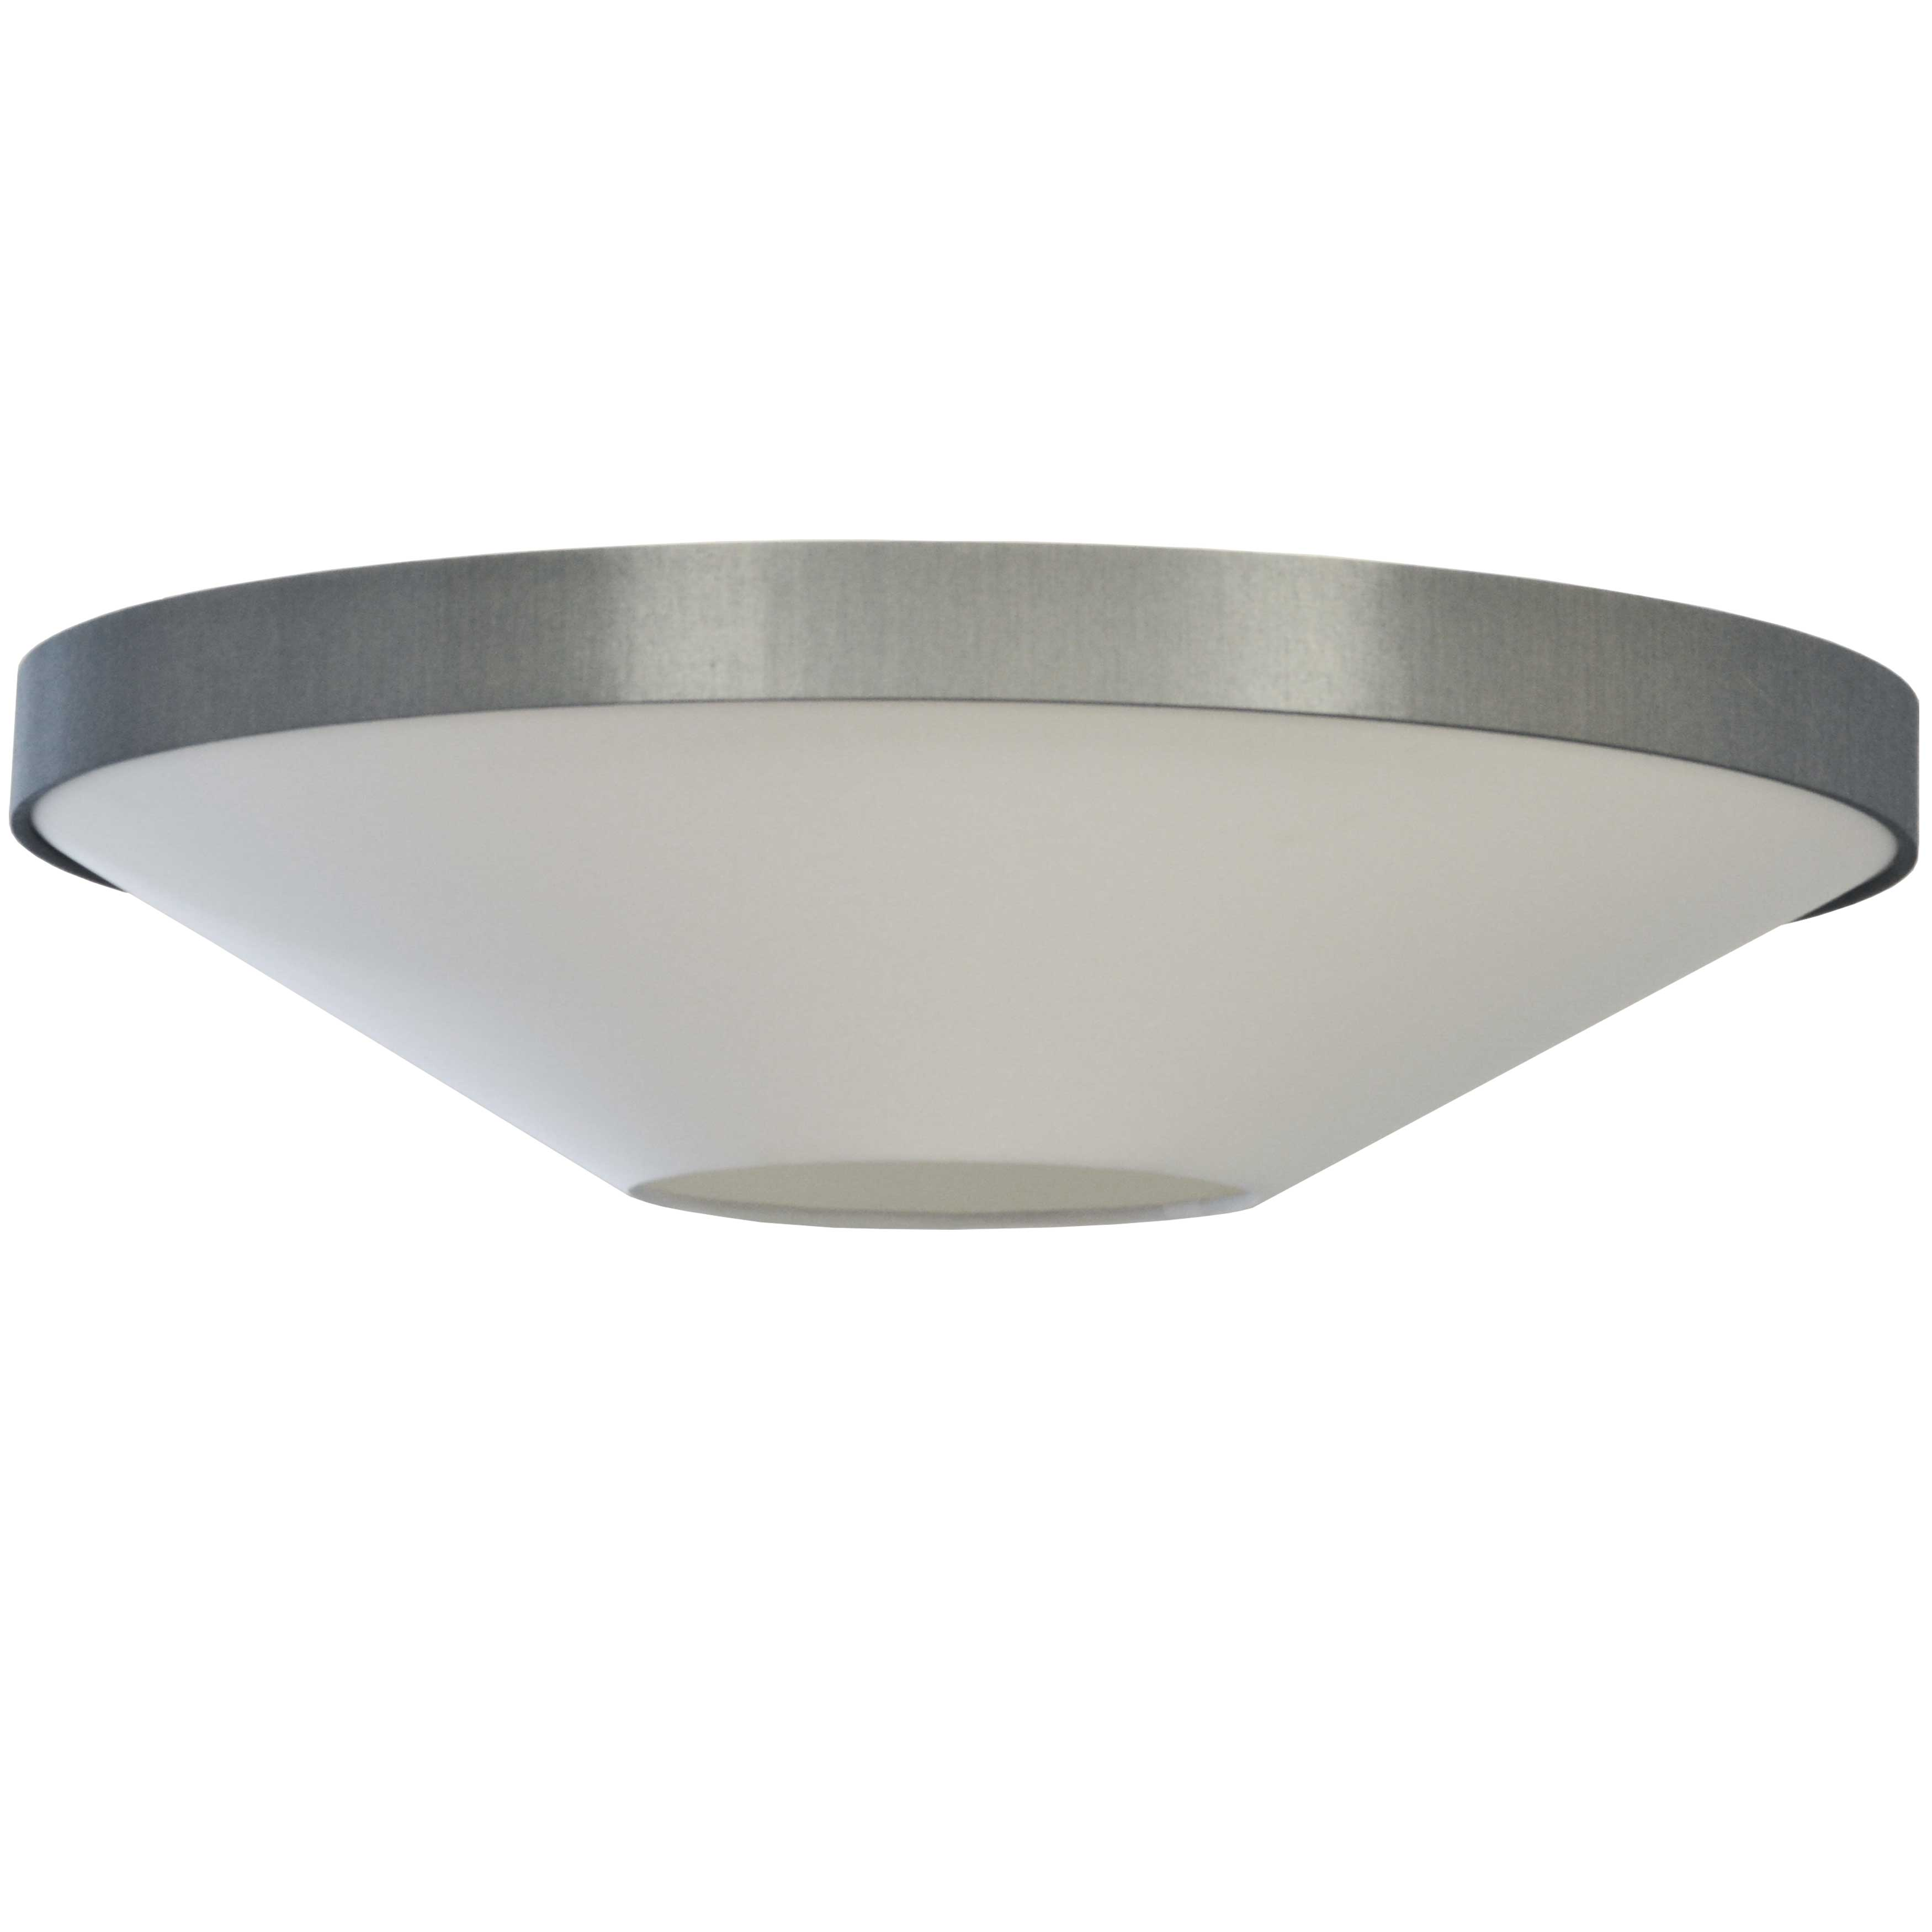 4LT Incandescent Flush Mount, PC w/ GRY & WH Shade